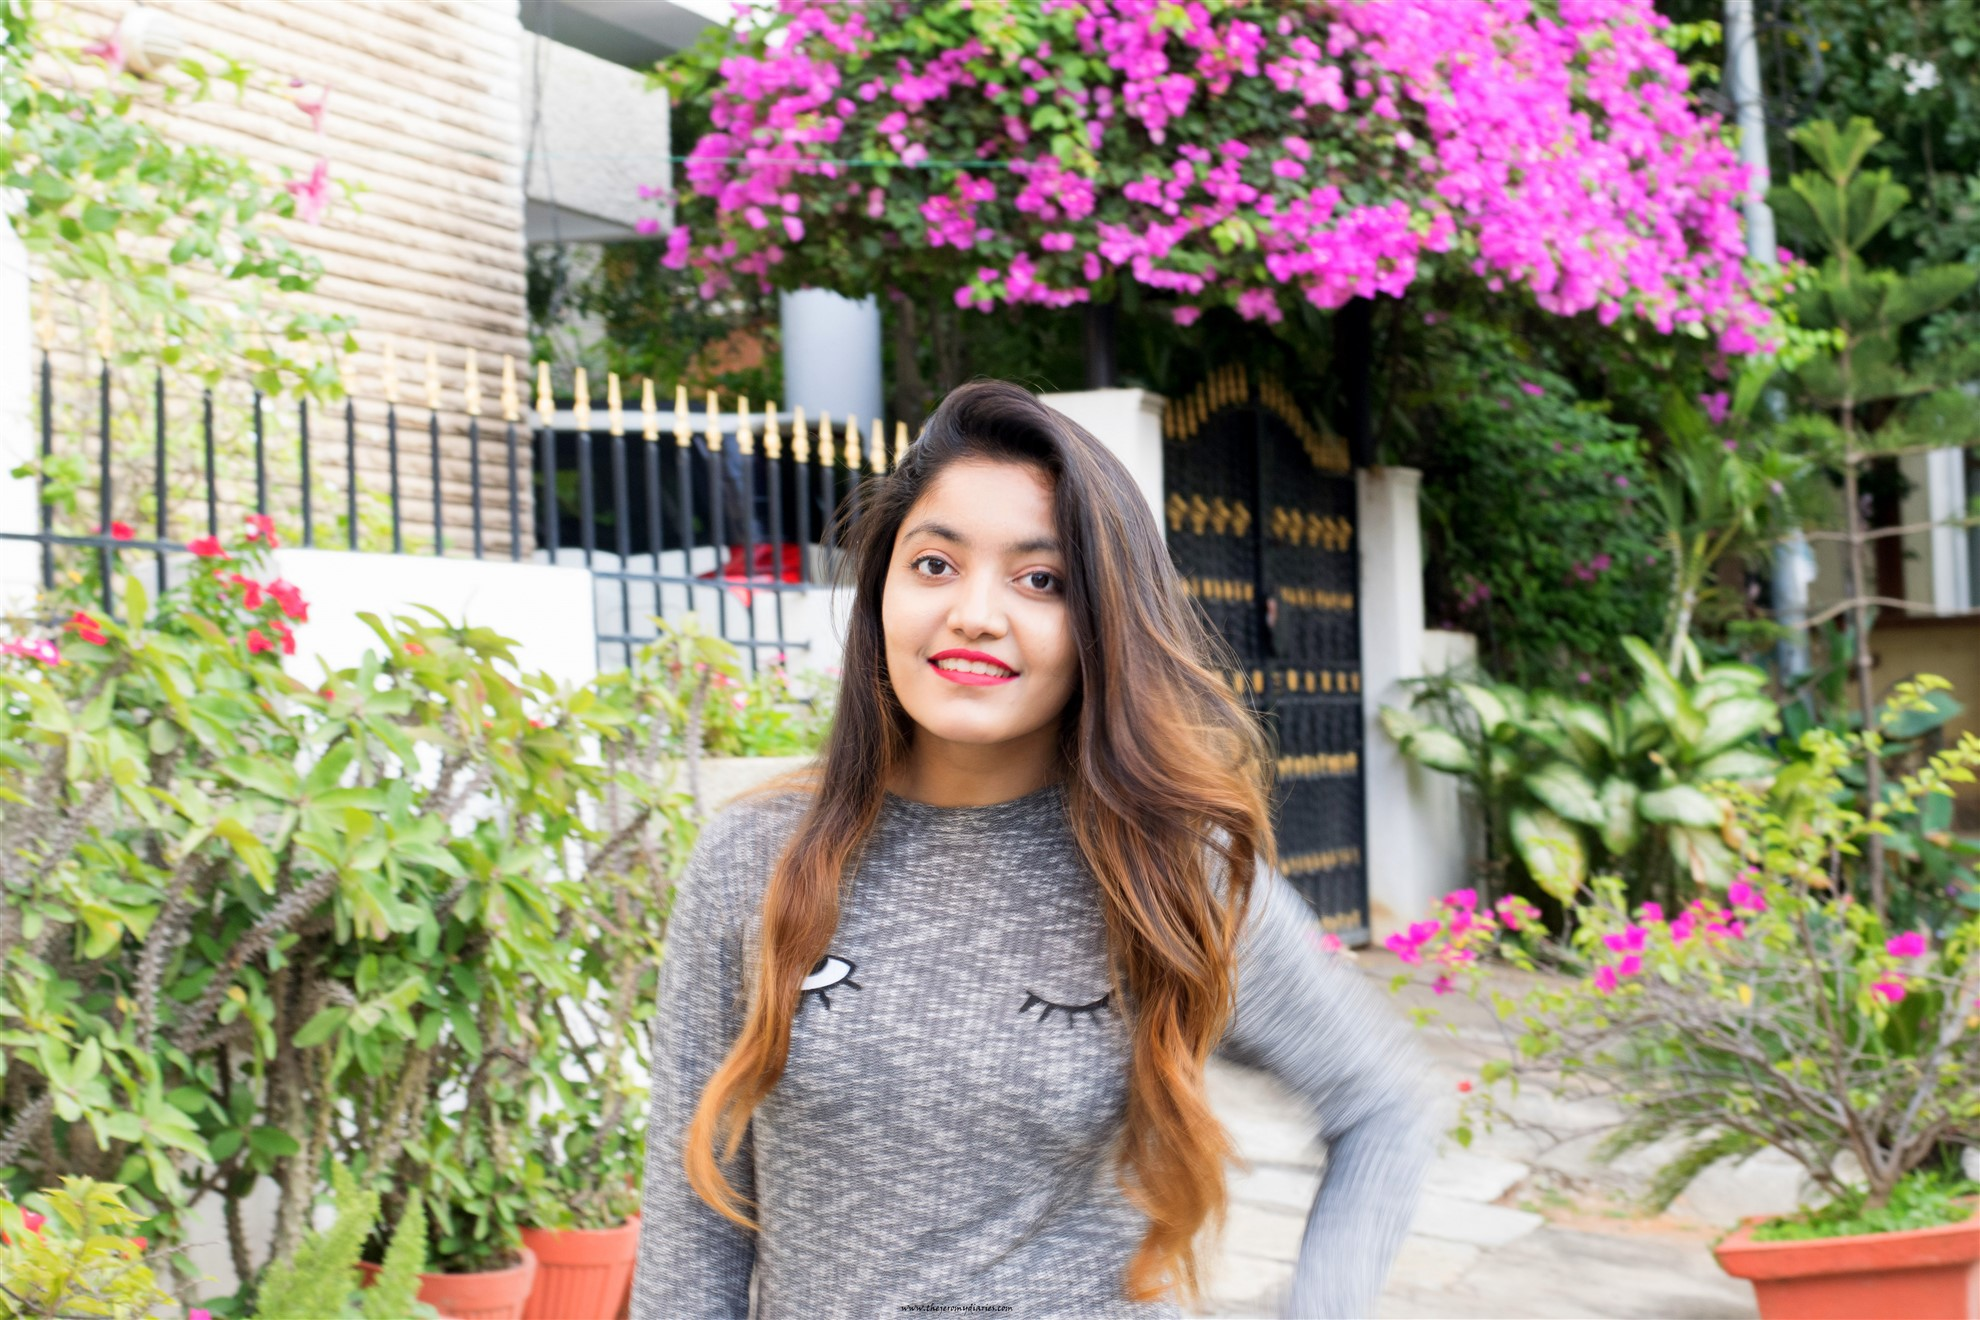 style-sweater-dresses-the-jeromy-diaries-fashion-blogger-x-reliance-footprint